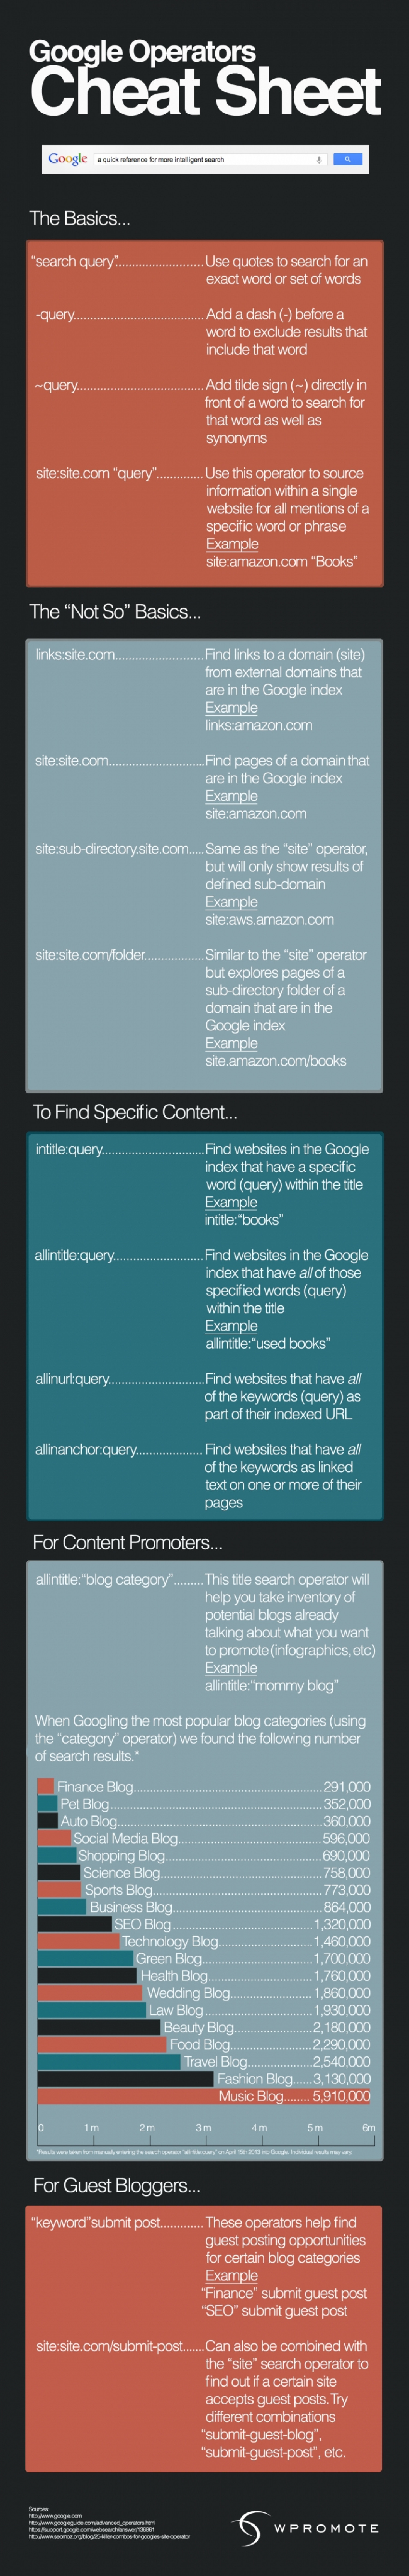 A Guide To Google Operators For Content Marketers Infographic